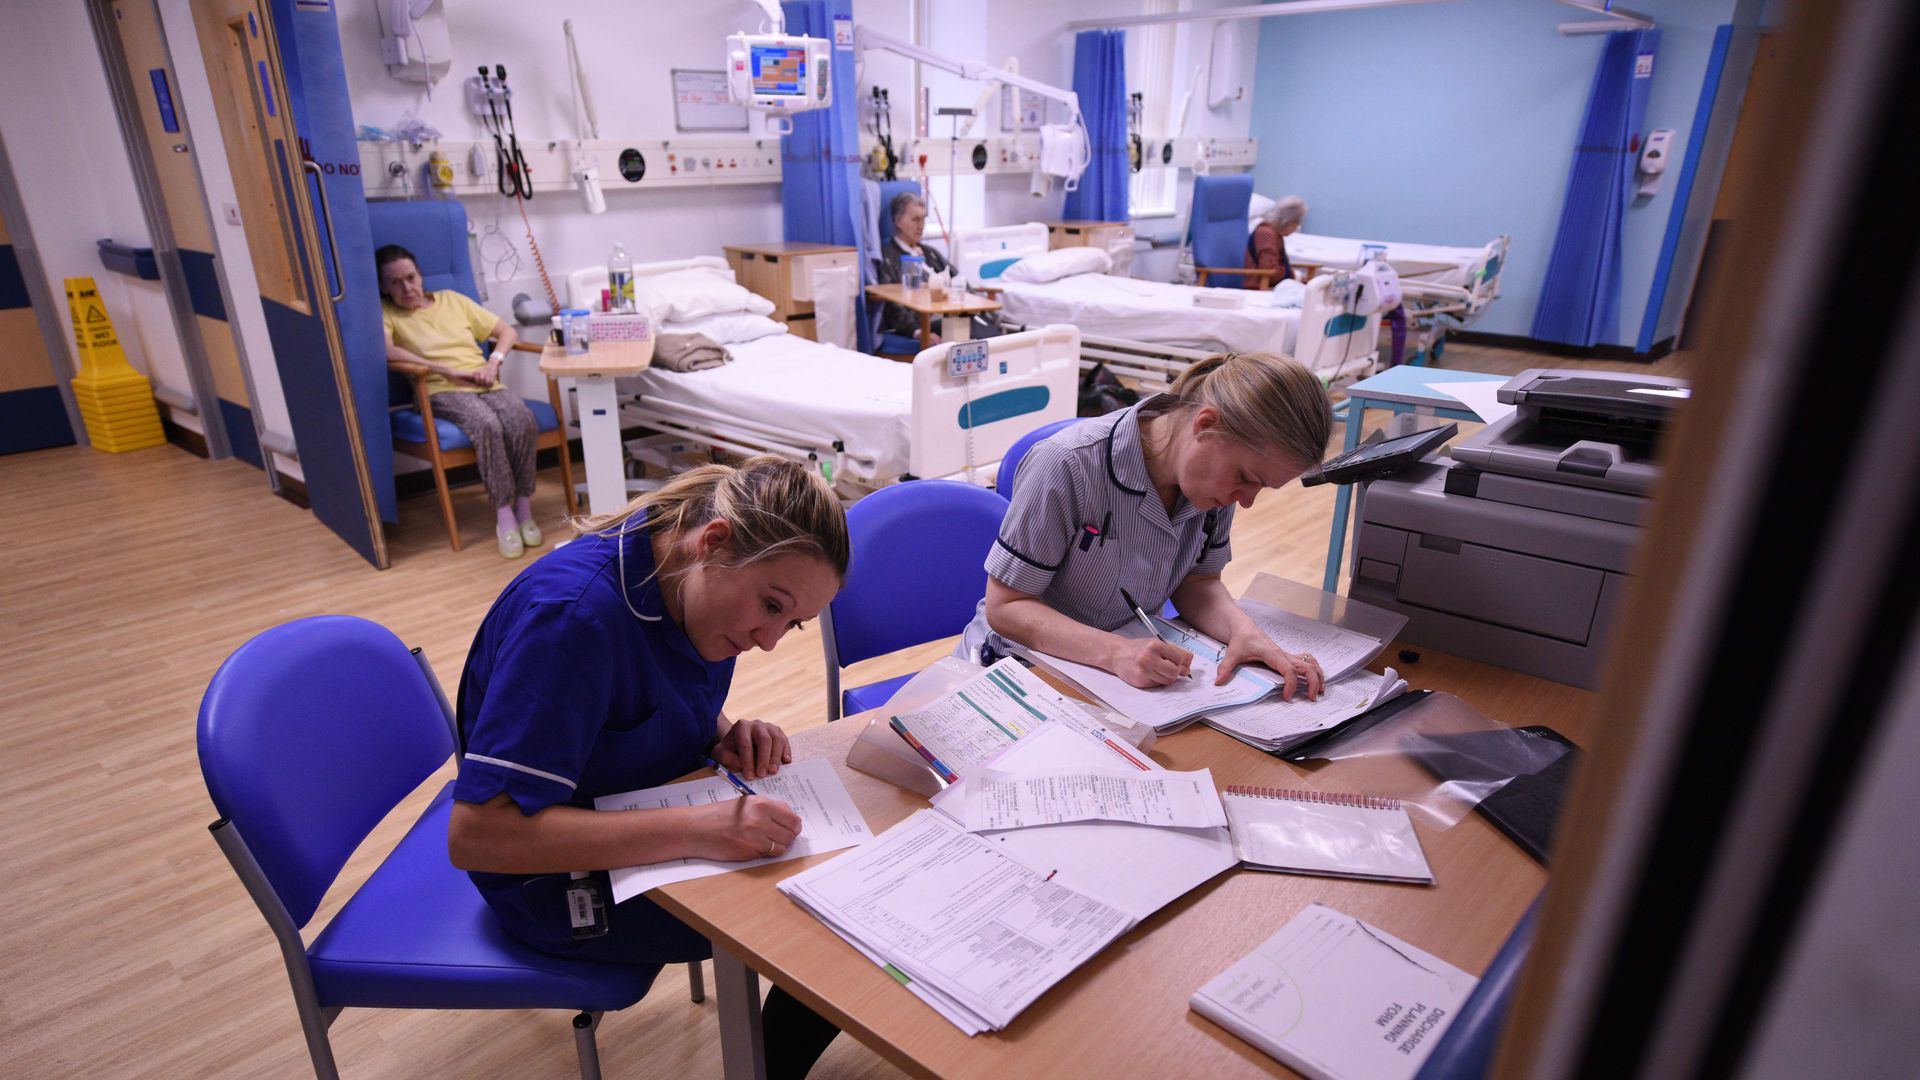 Nurses writing on papers near hospital beds